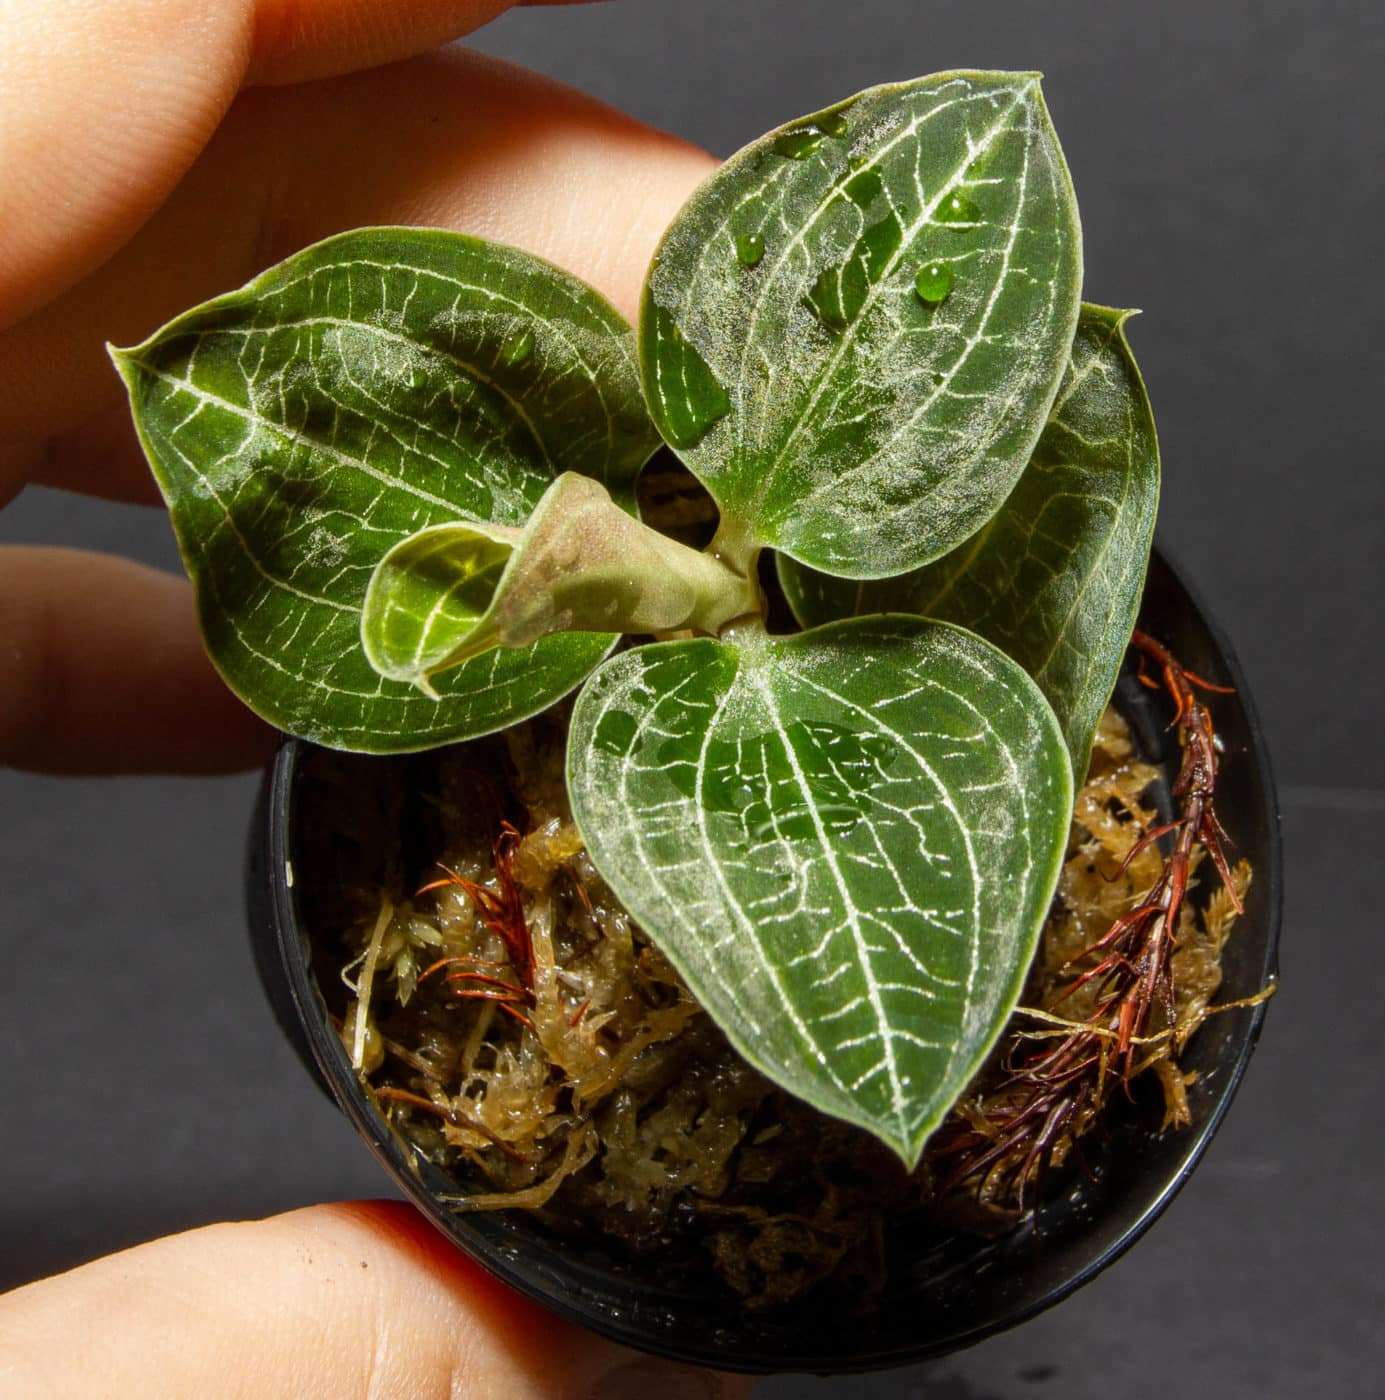 Jewel Orchid Anoectodes Charlottes web